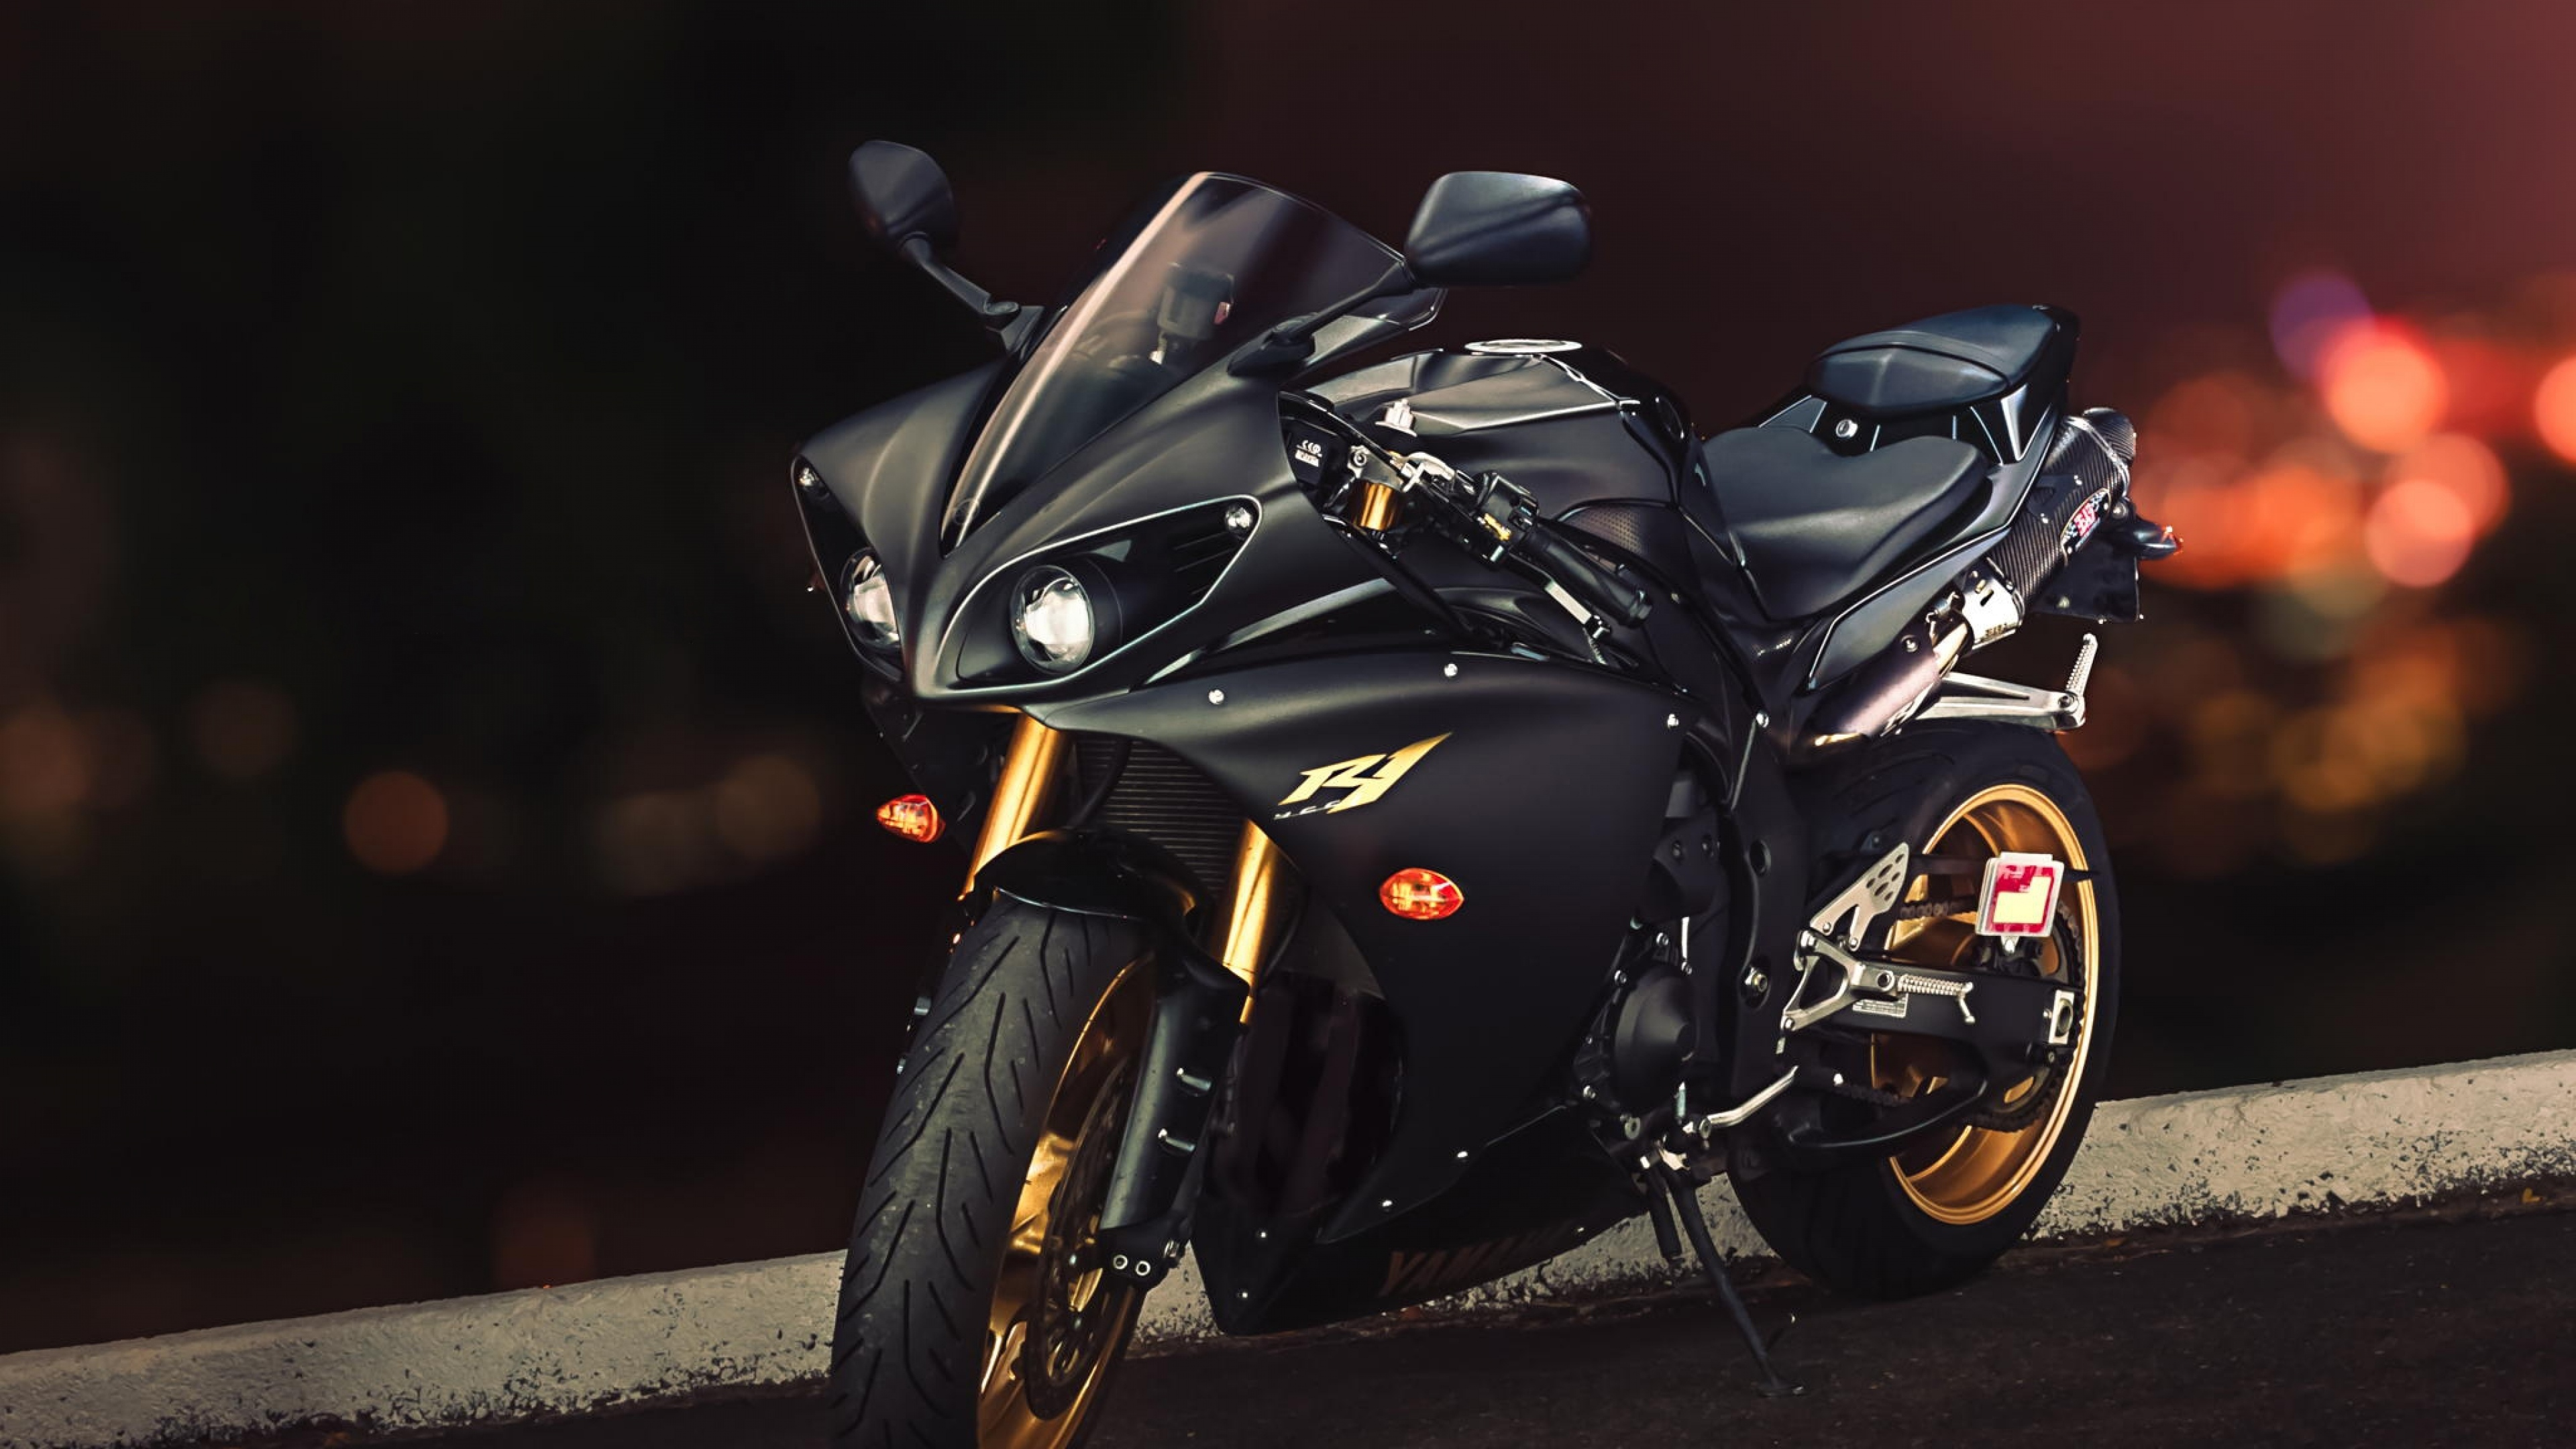 Yamaha R1, HD Bikes, 4k Wallpapers, Images, Backgrounds